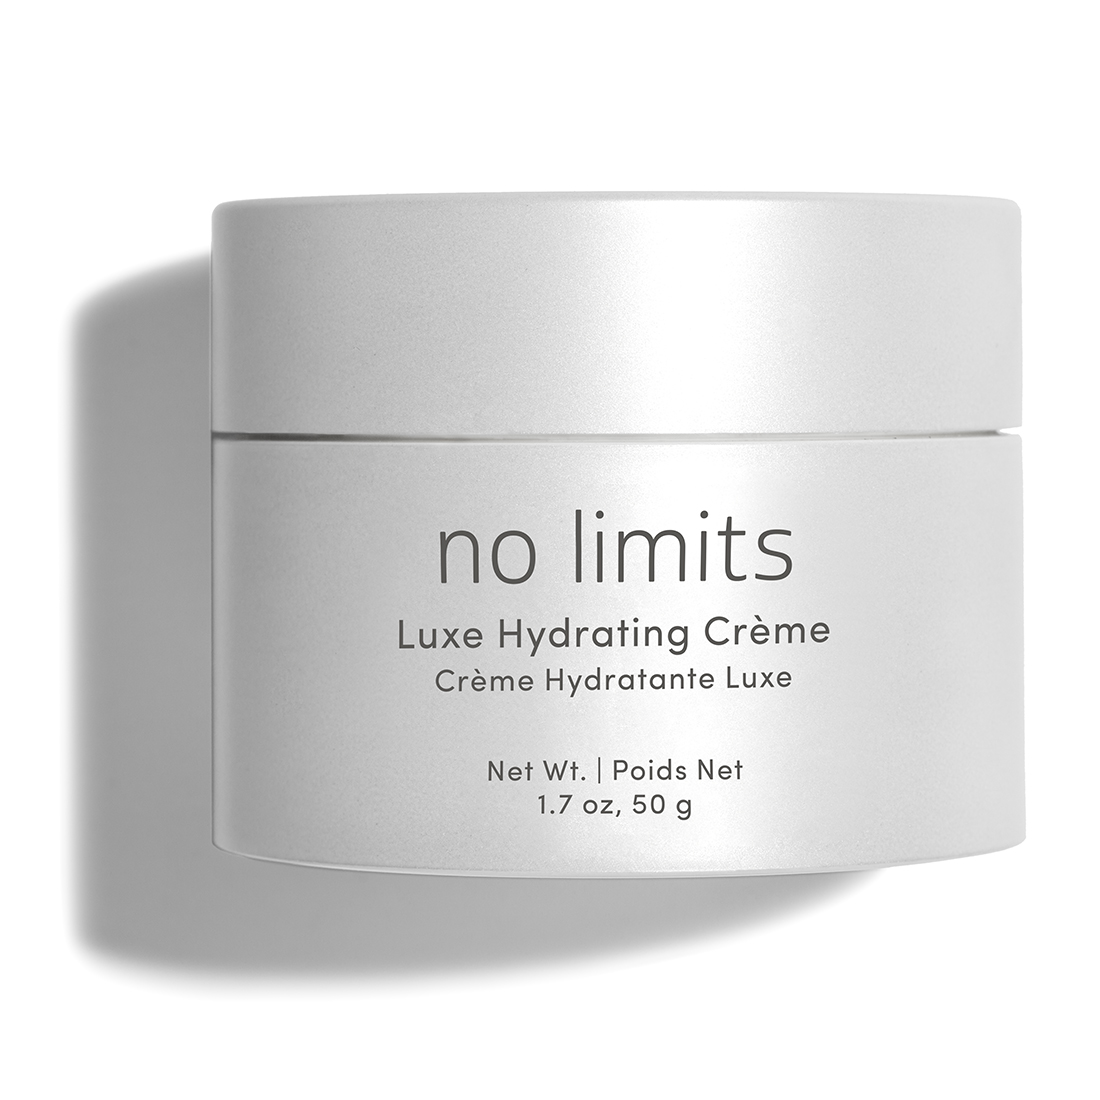 No Limits Luxe Hydrating Crème